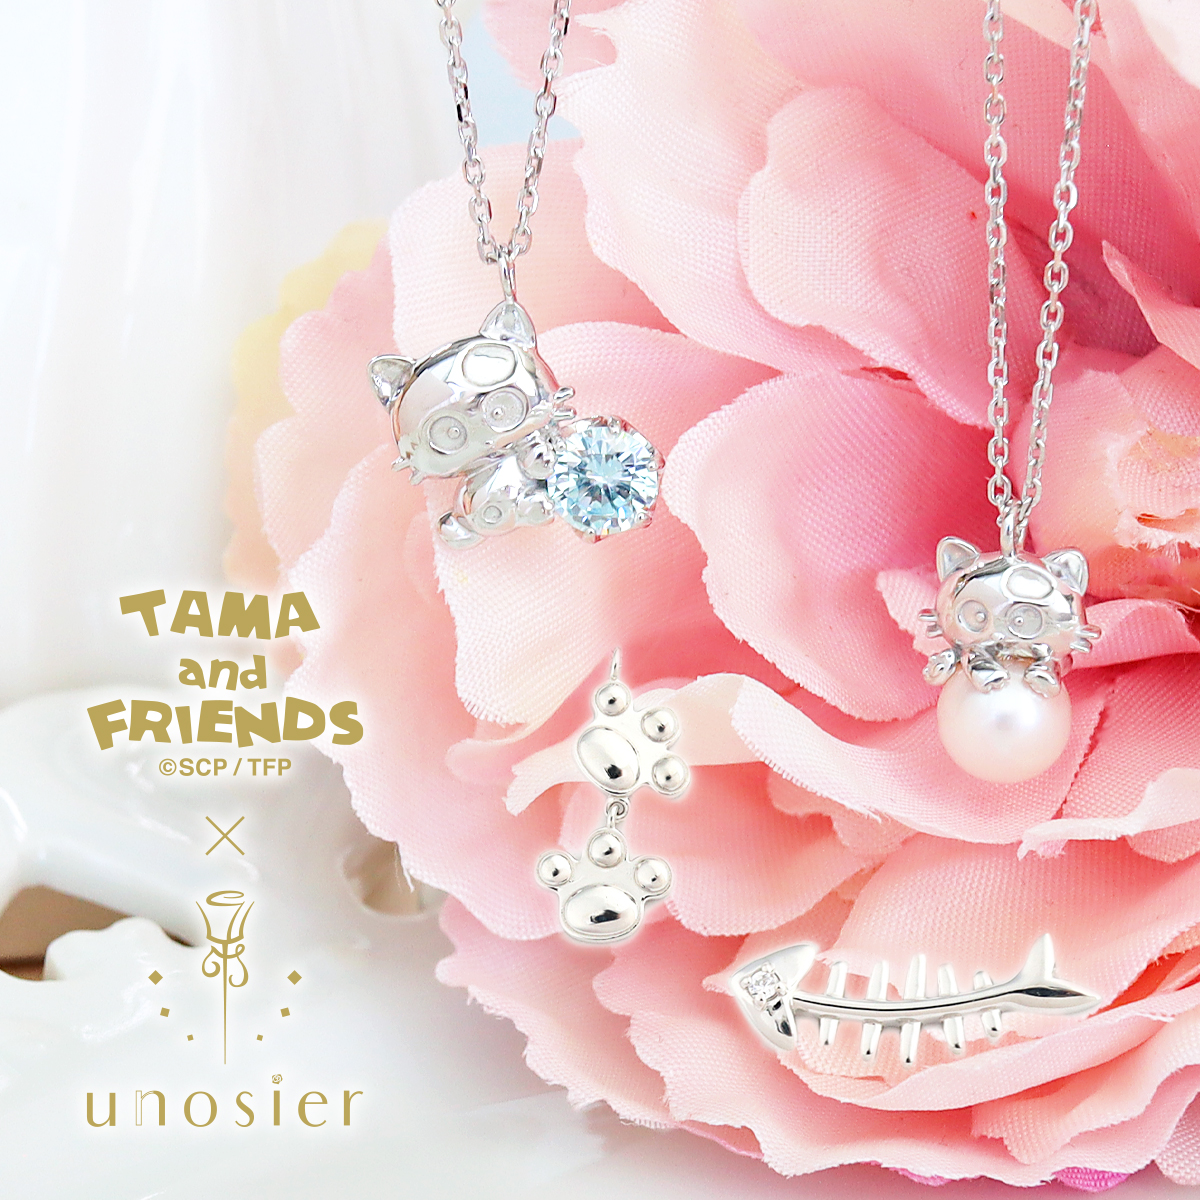 Tama and Friends collaboration necklace